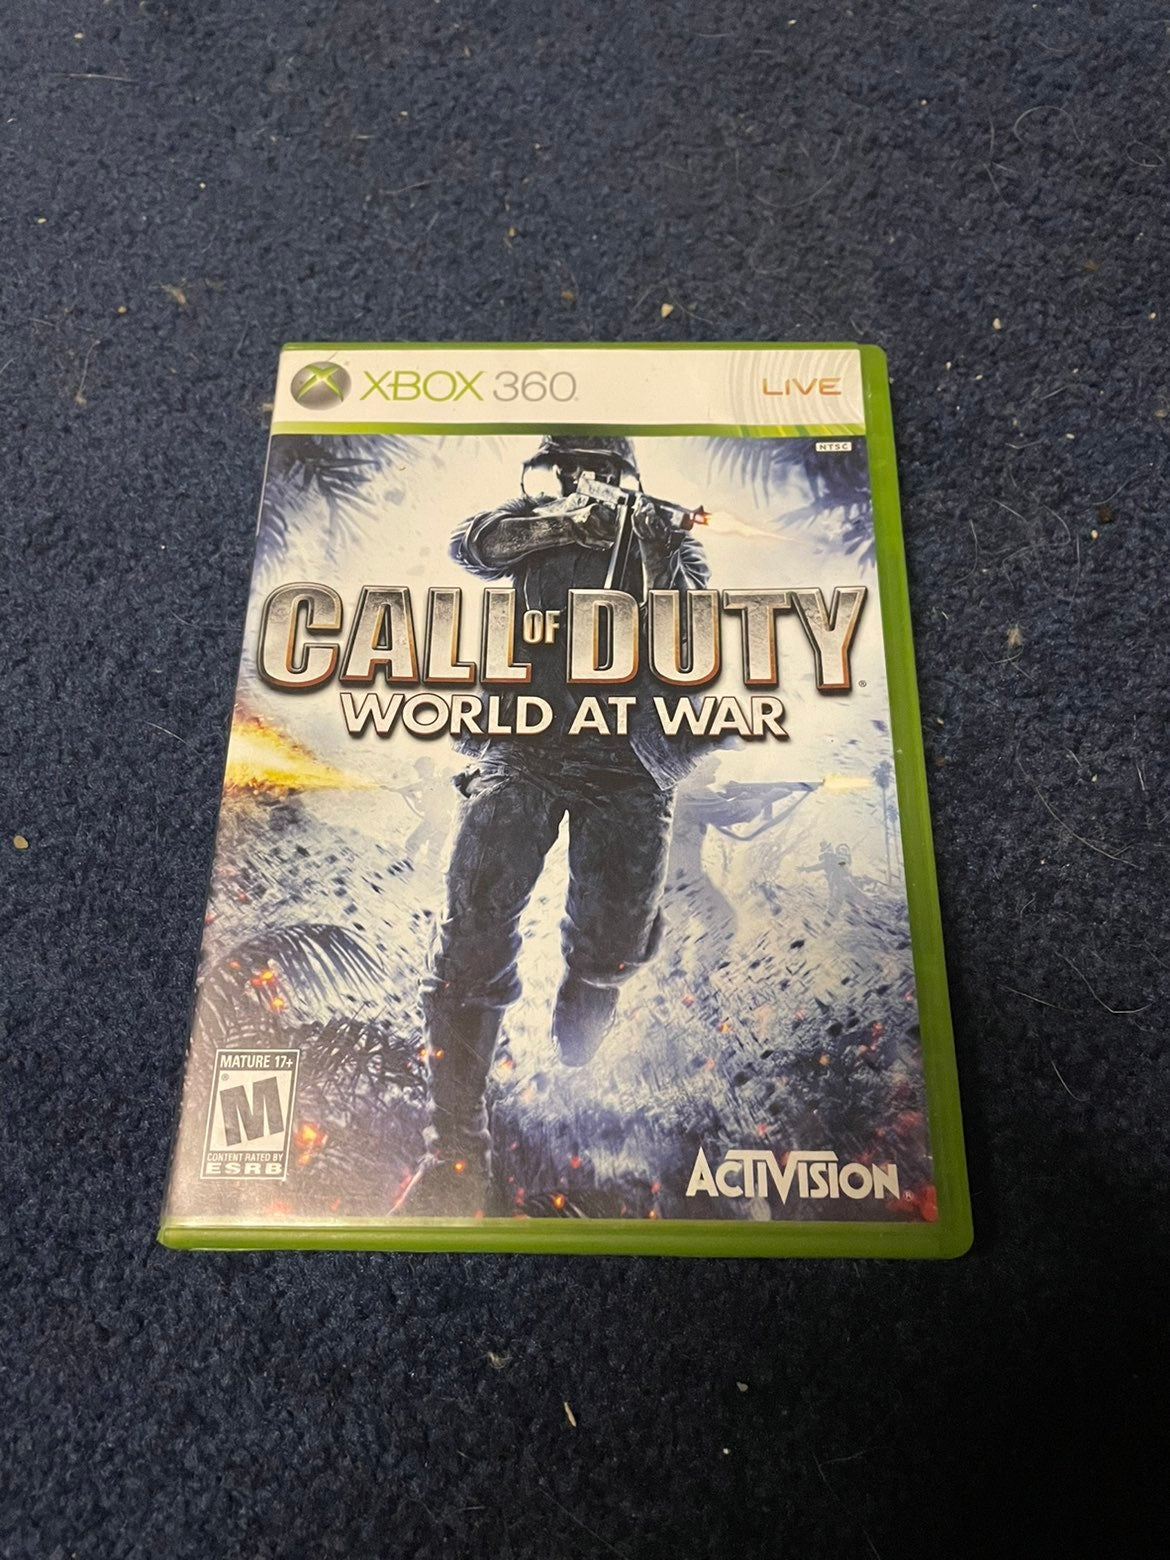 Call of Duty: World at War on Xbox 360